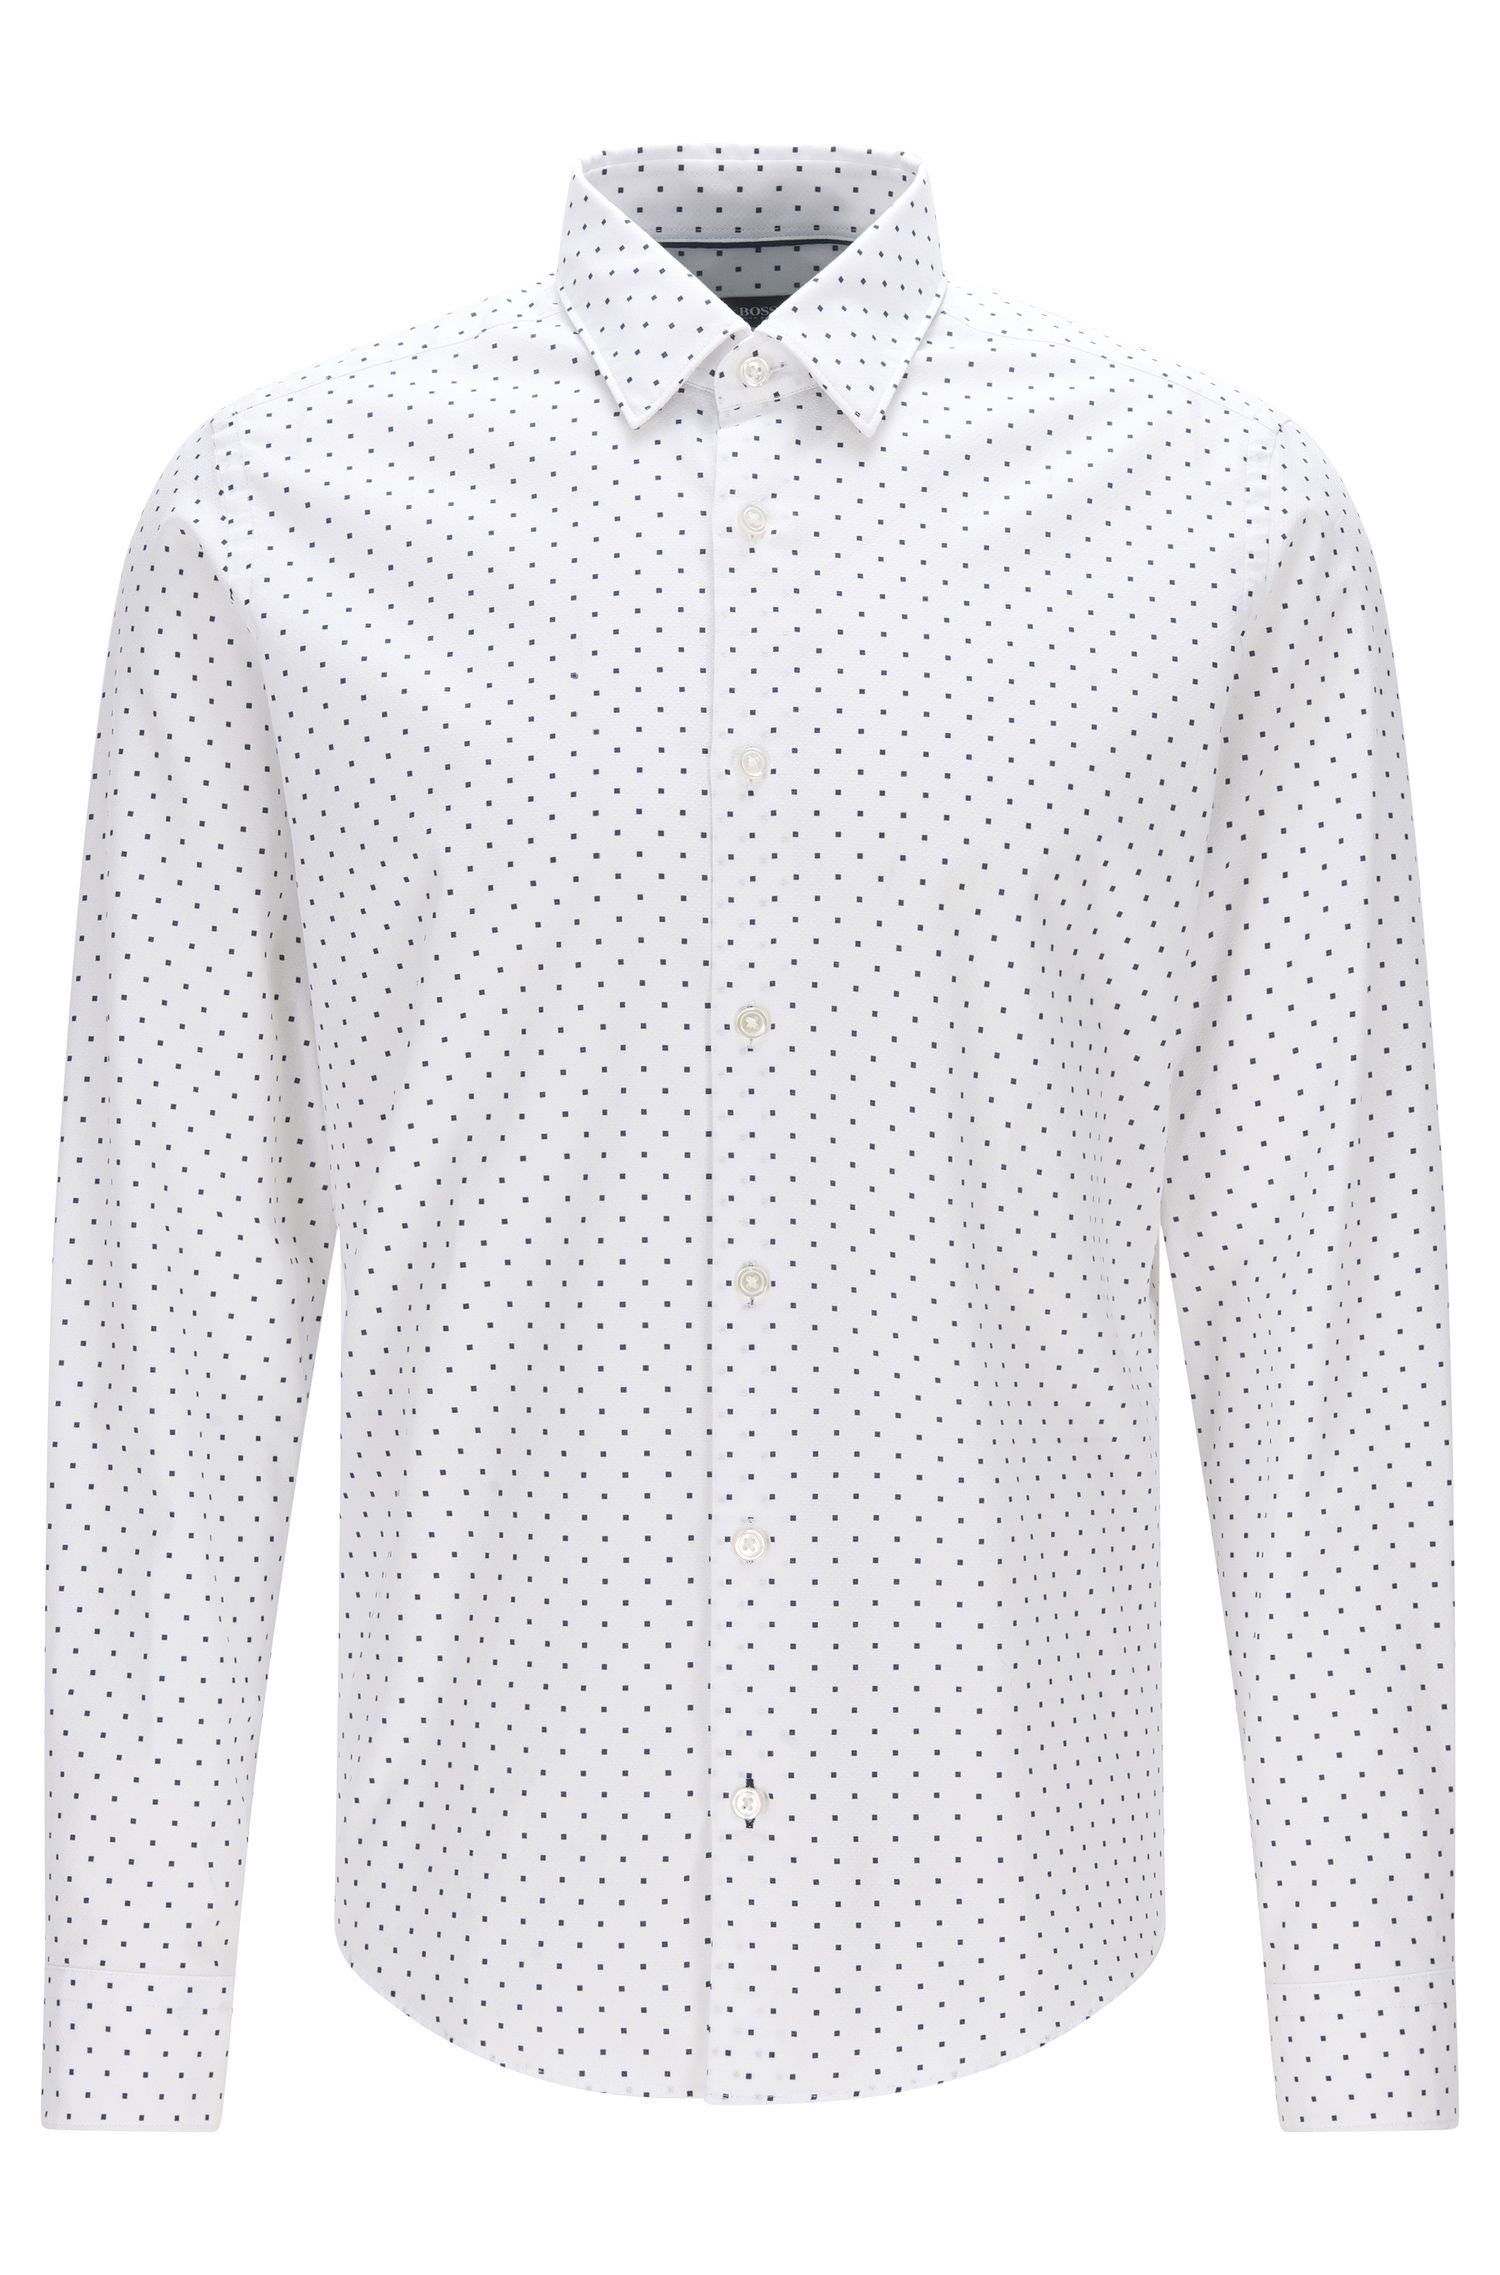 Regular-fit cotton jacquard shirt in Italian dot print